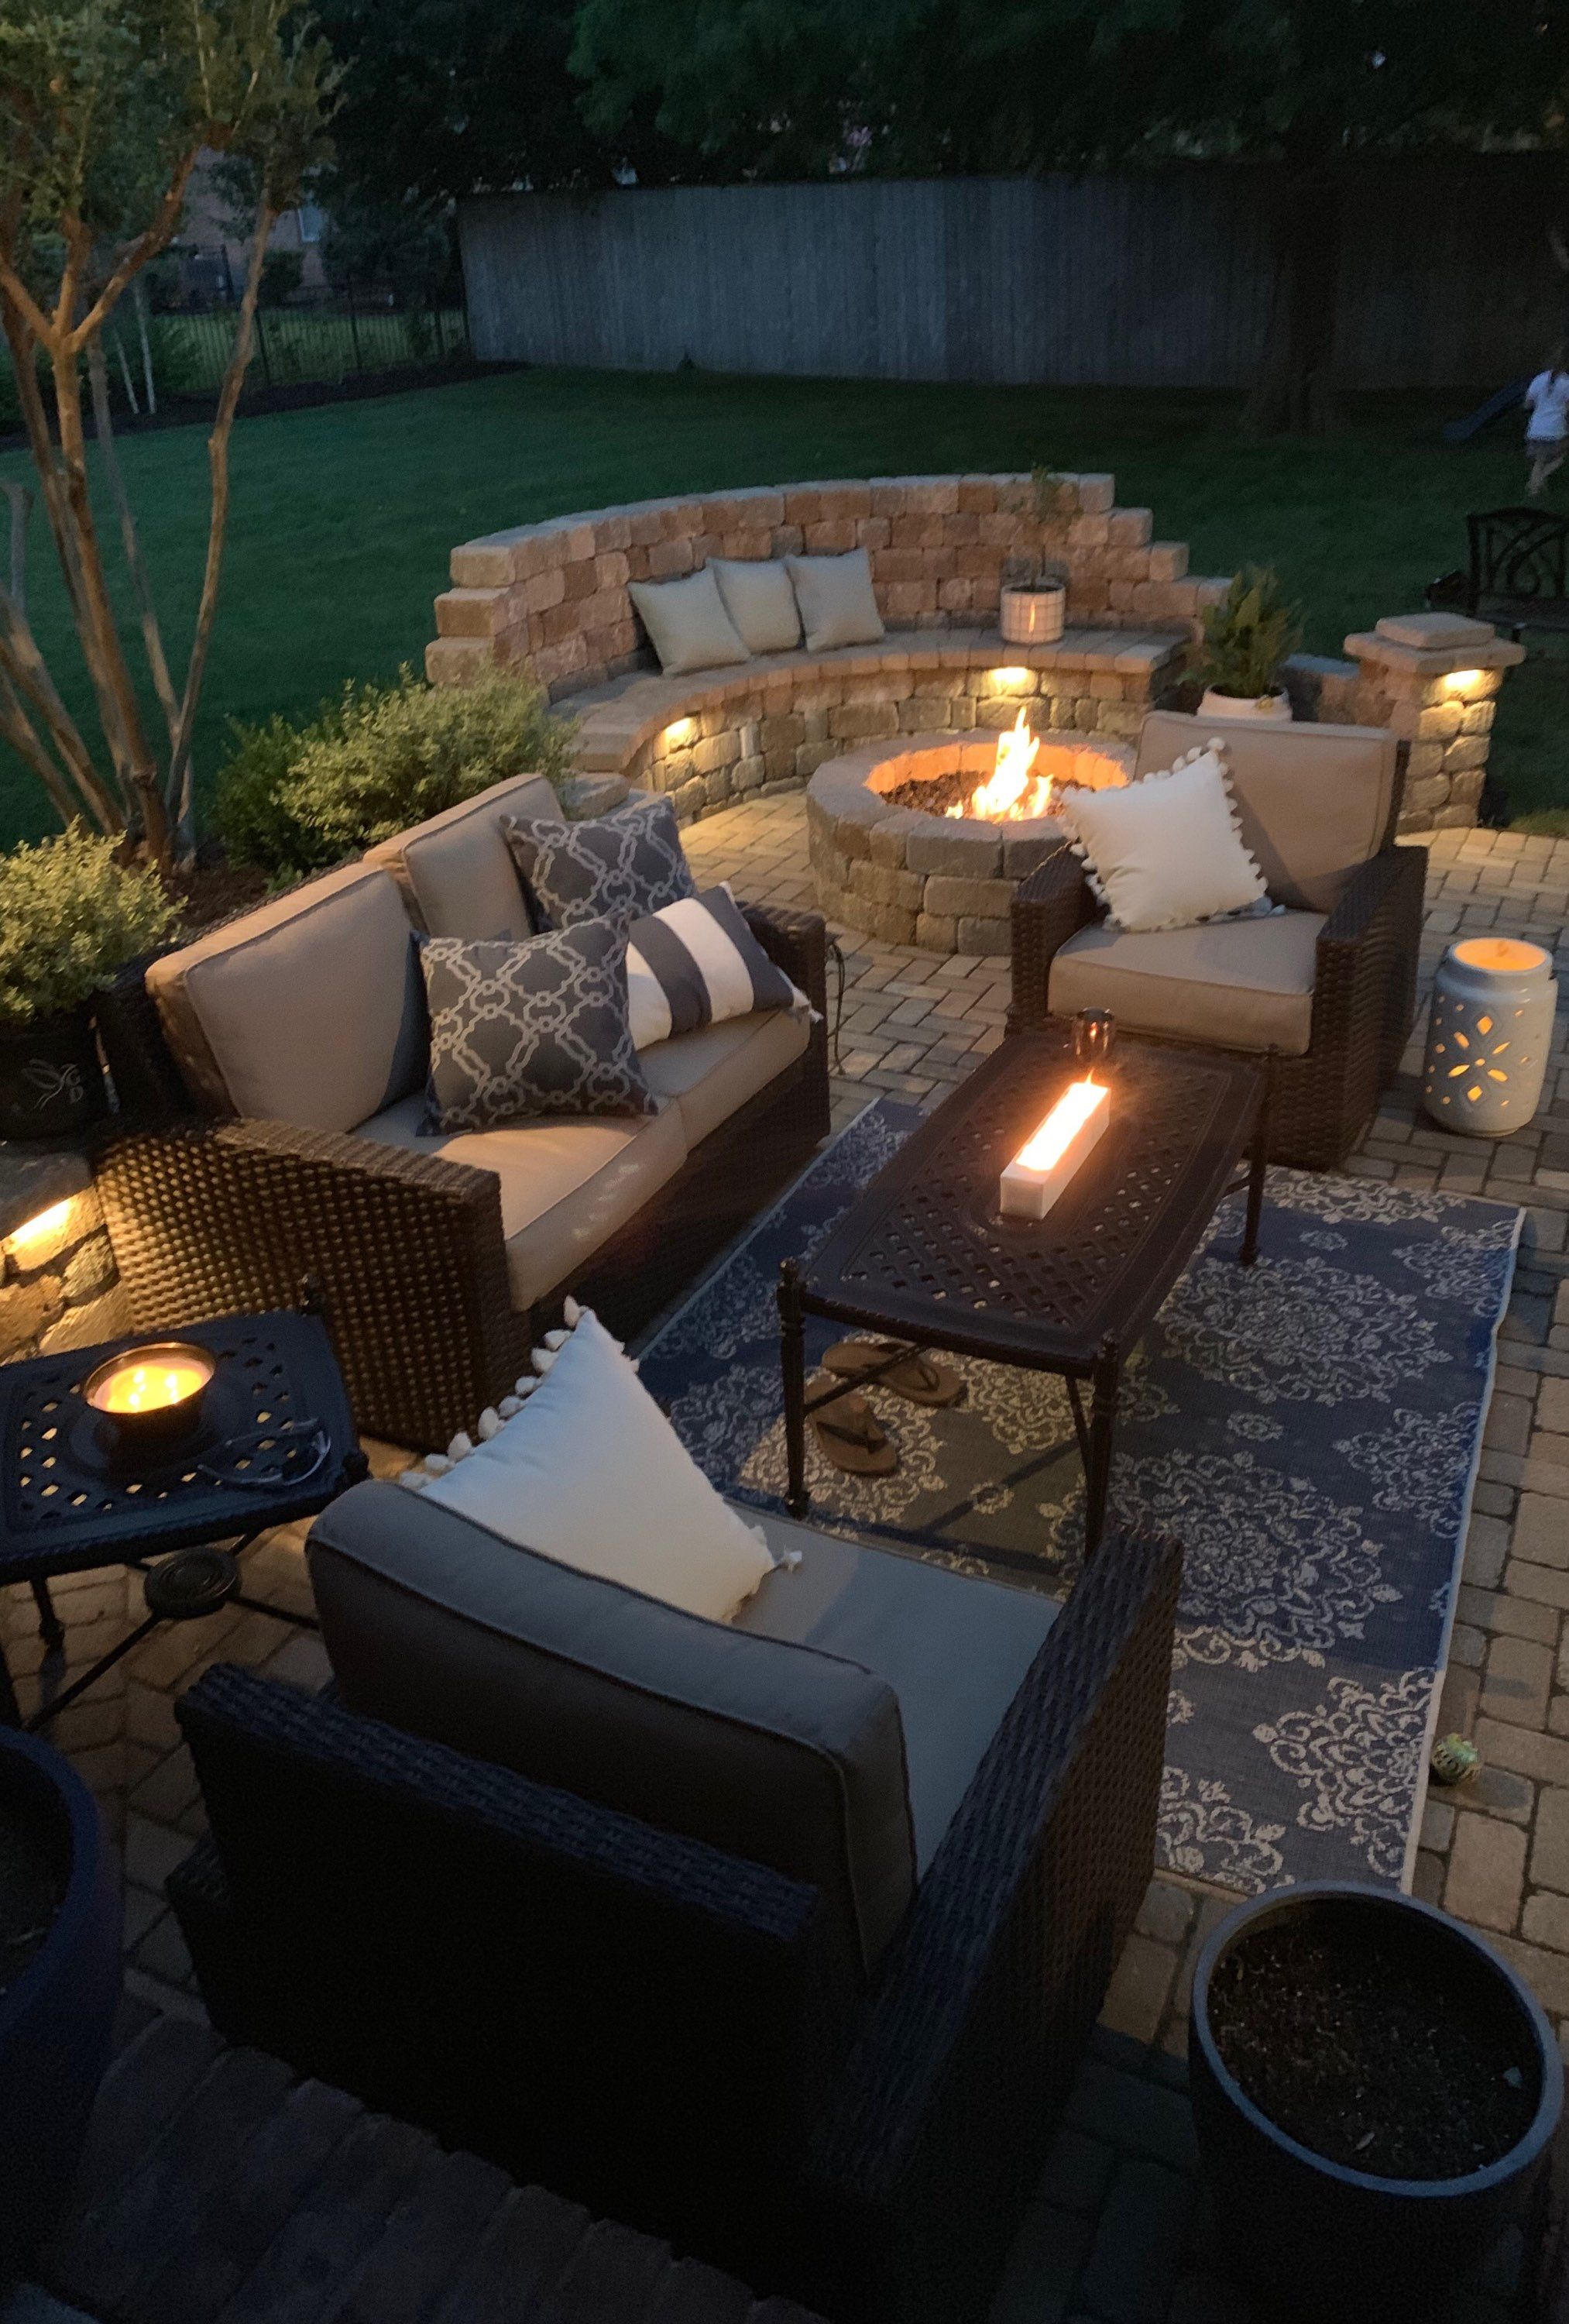 Outdoor living kits to add function and value to your home ... on My Garden Outdoor Living id=24129